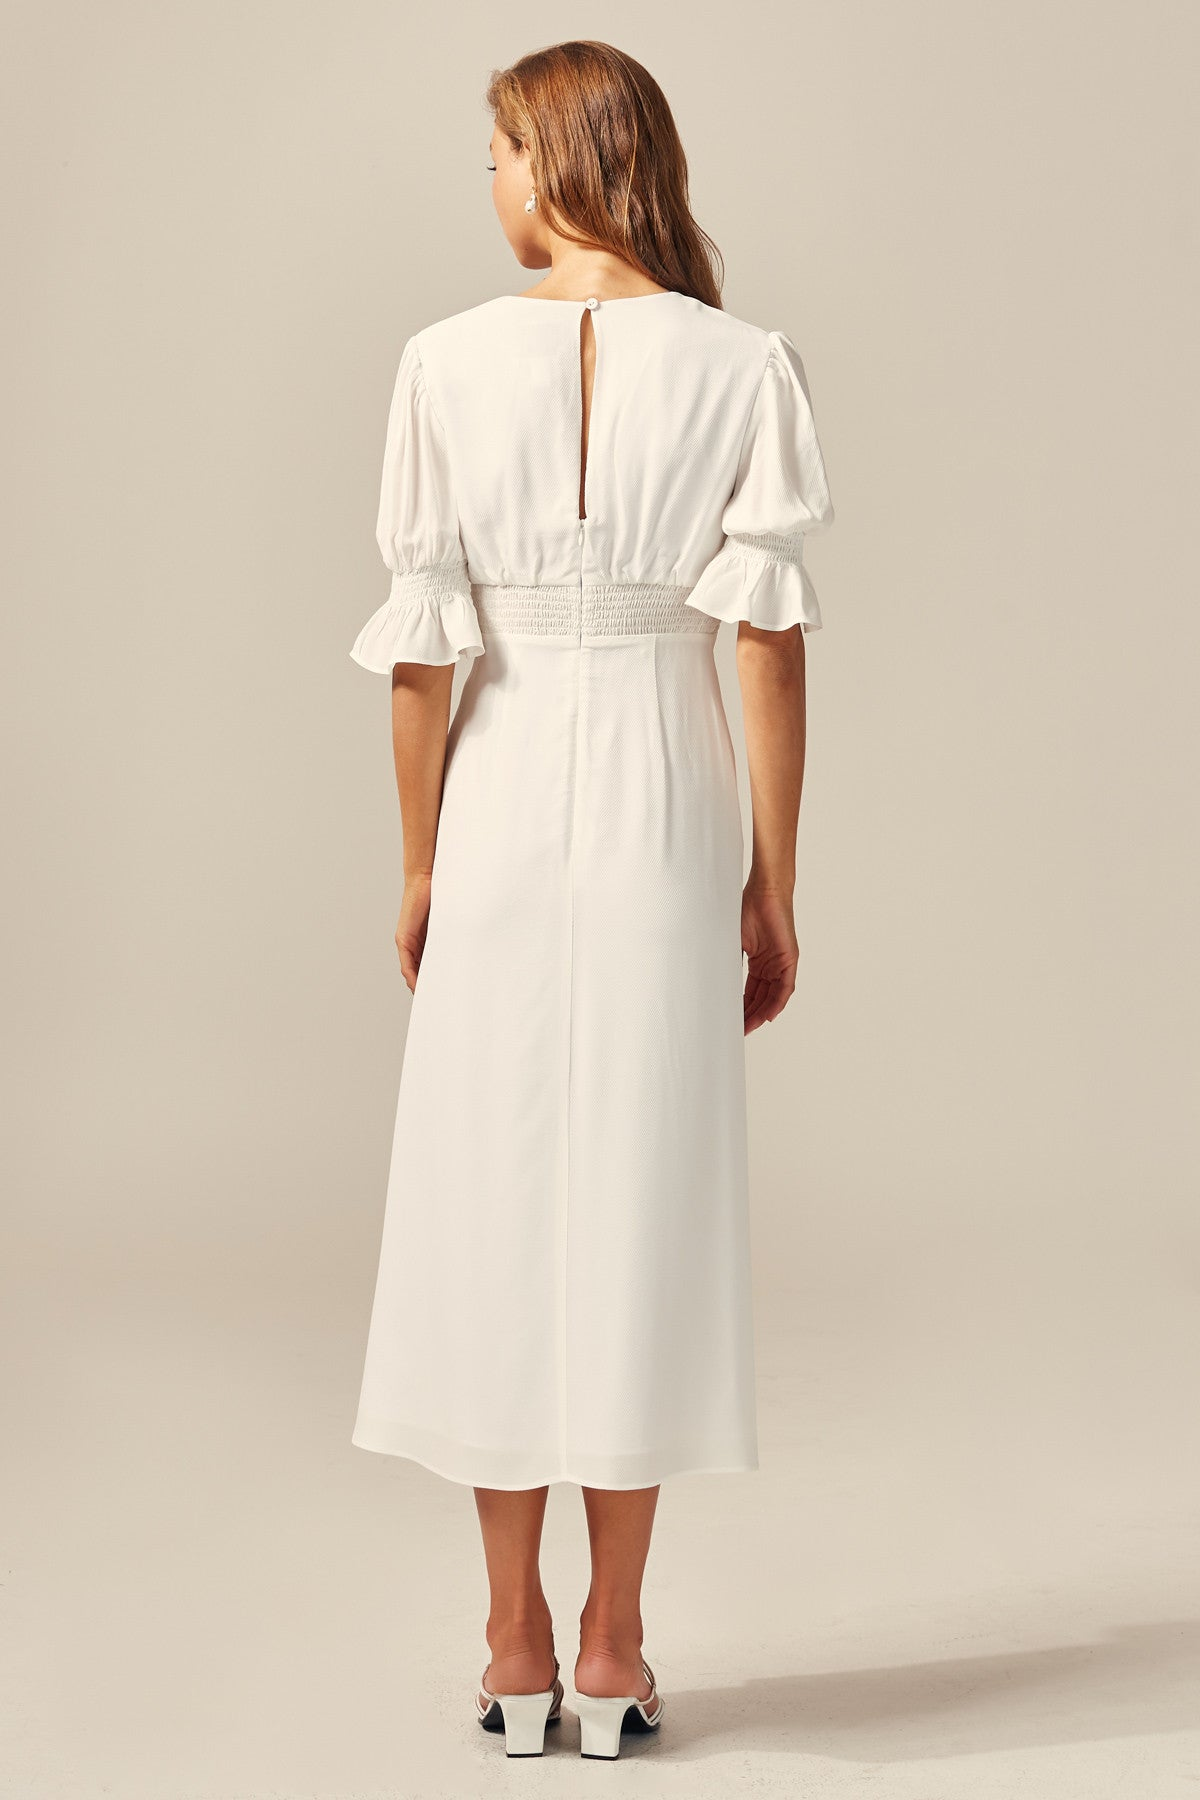 PUBLICITY SHORT SLEEVE DRESS ivory